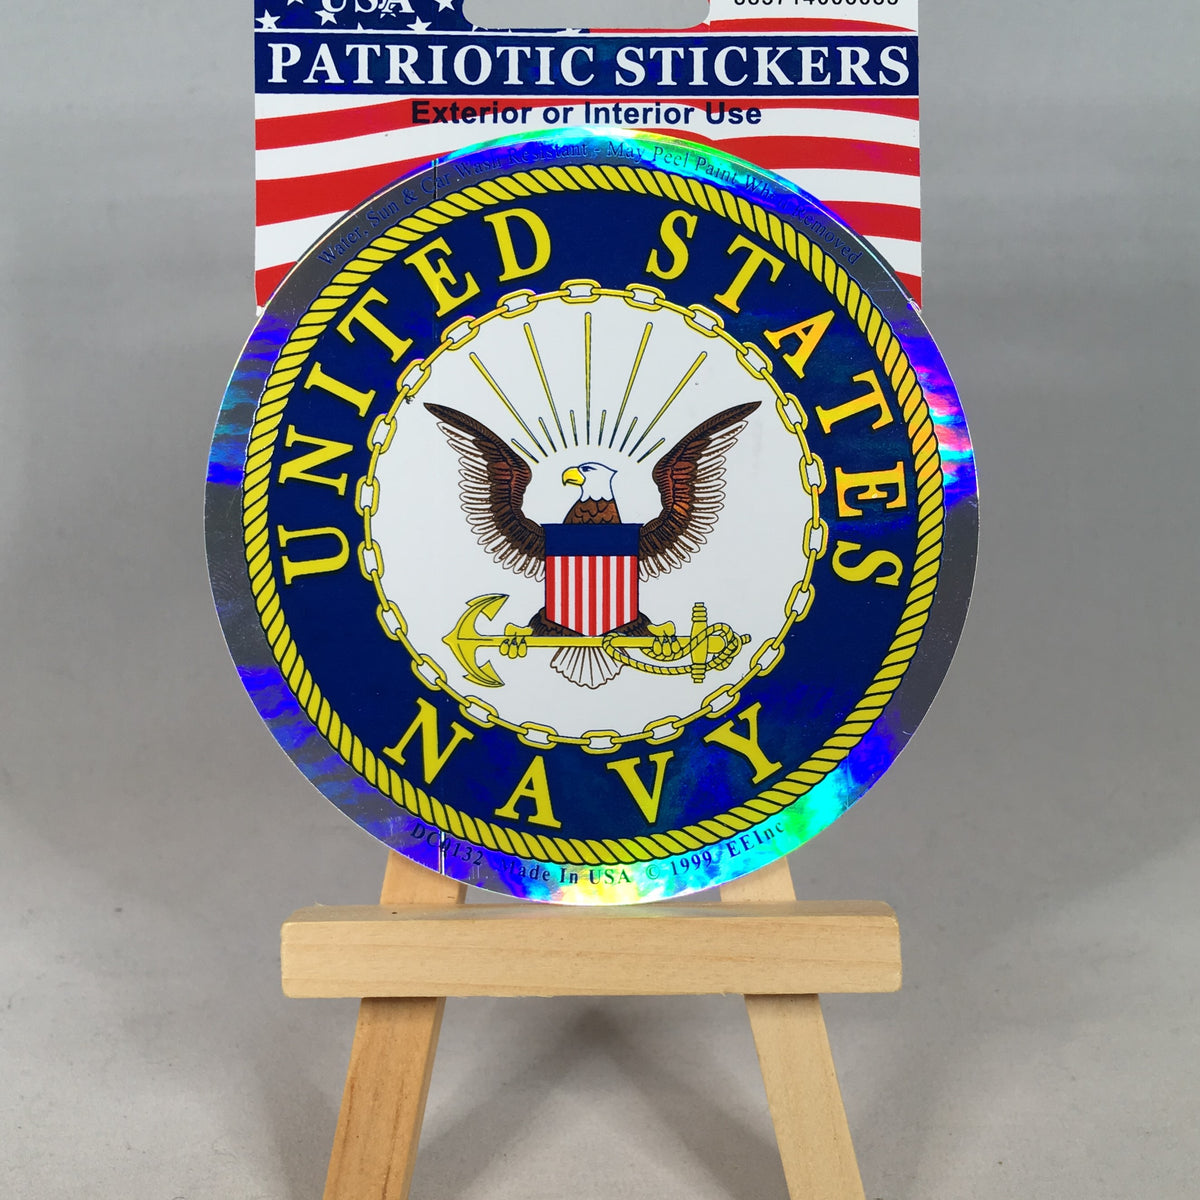 U.S. Navy Decal